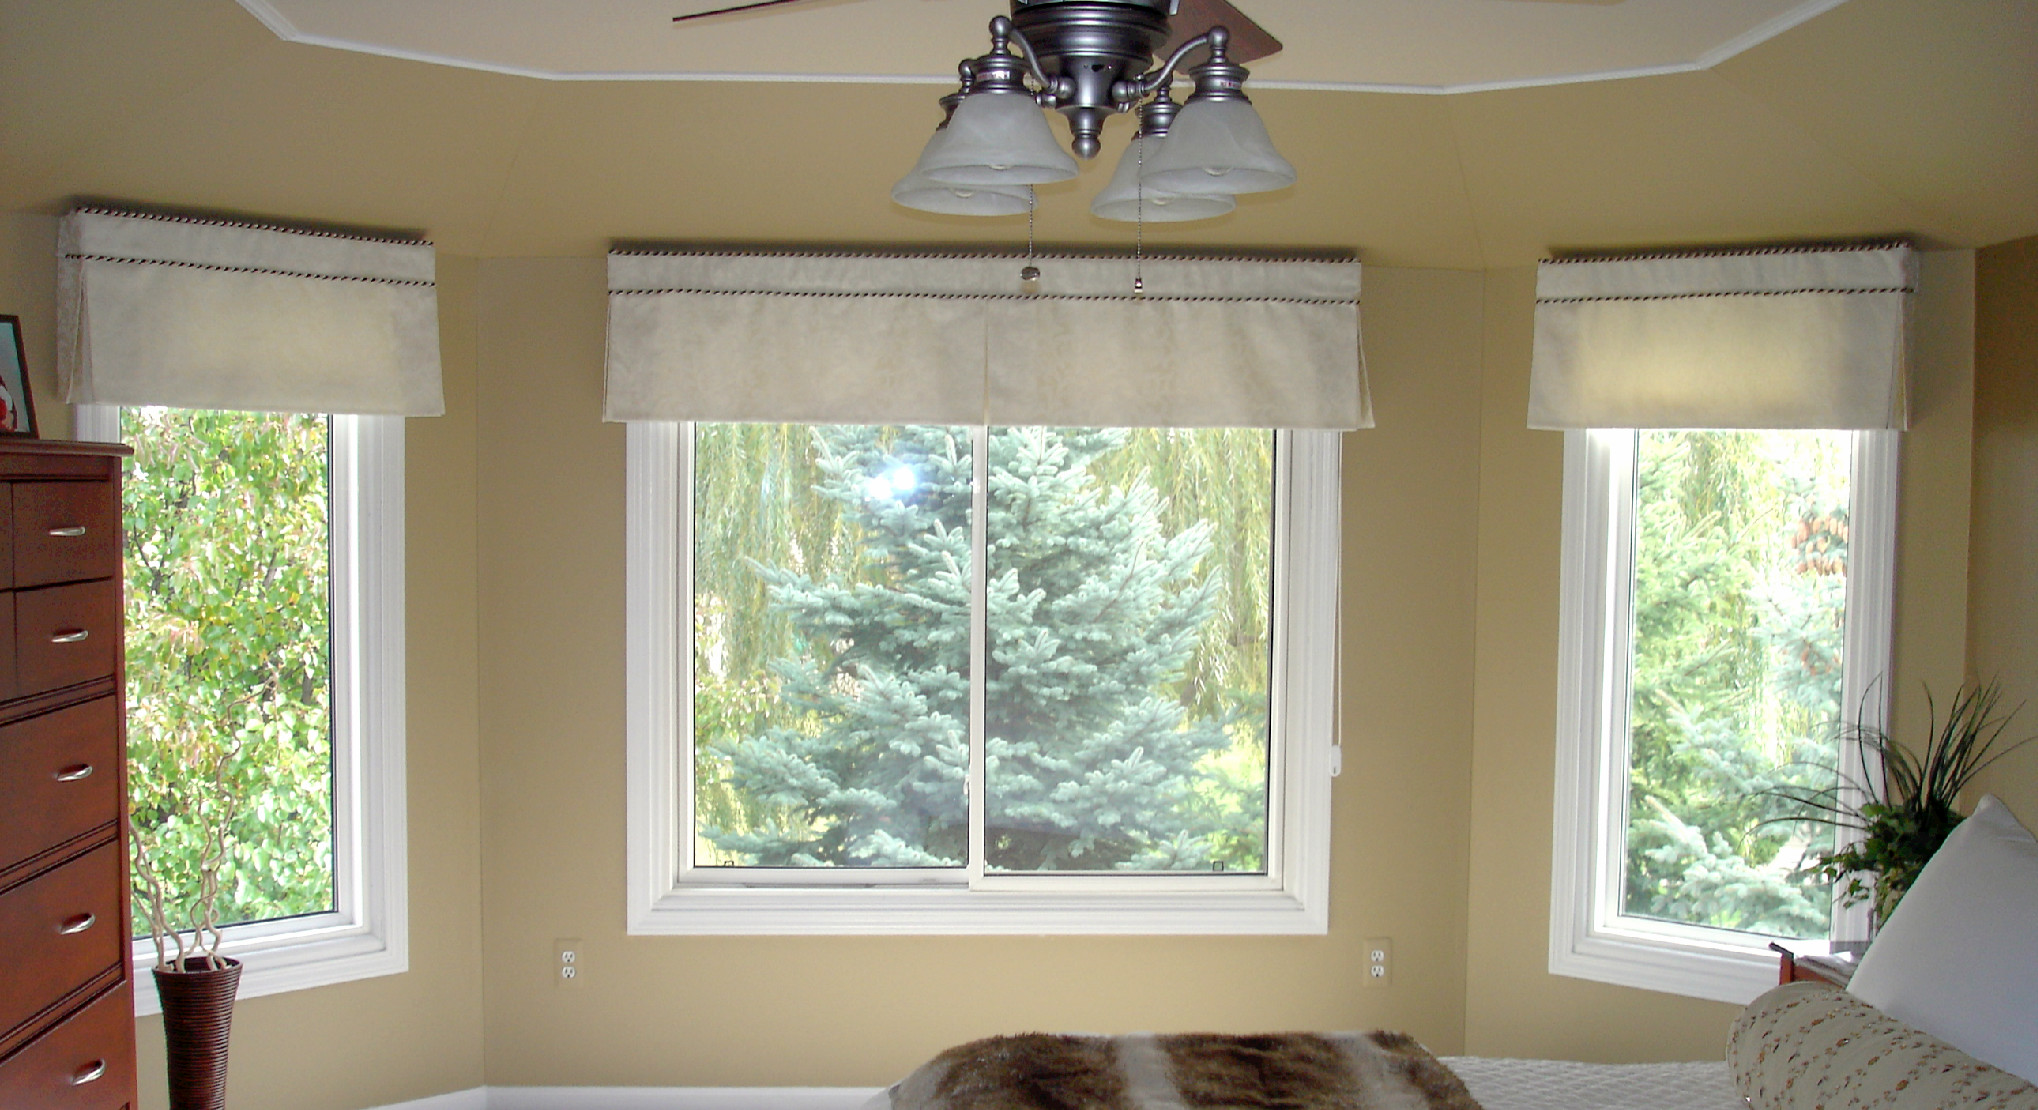 Valances window treatments ideas window treatments for Ideas for window treatments